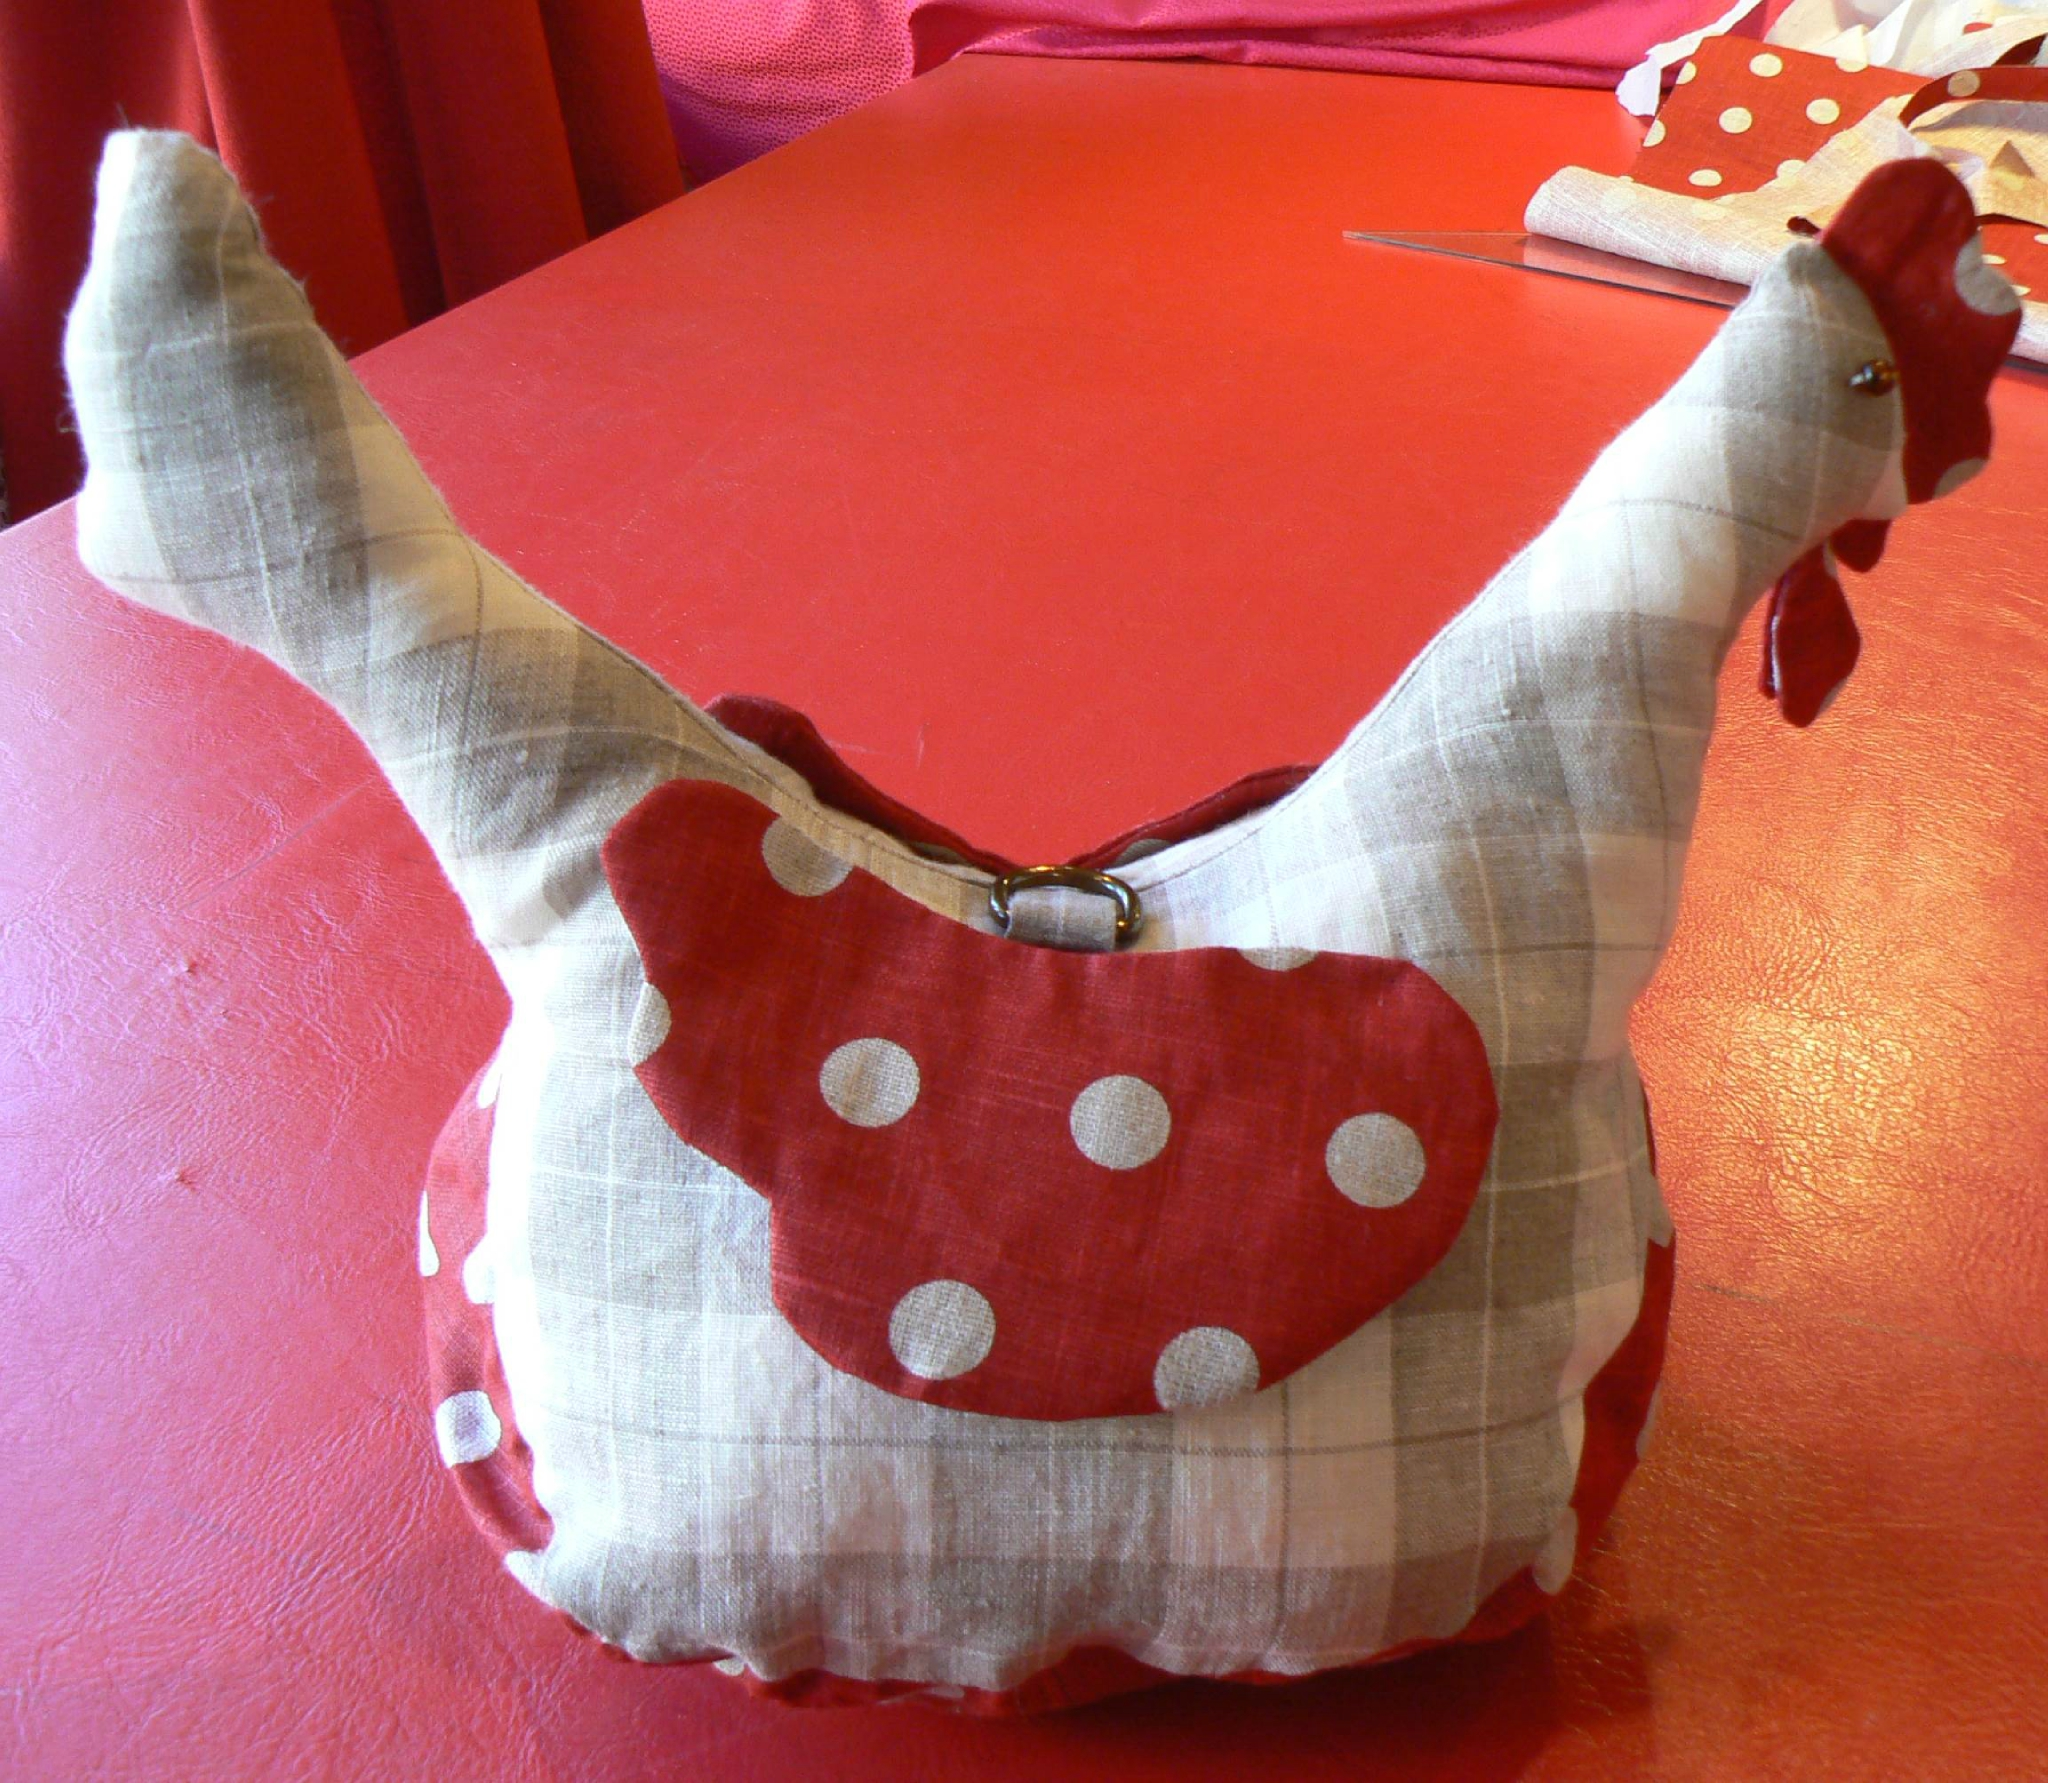 poule sac à sac marjorie g creation